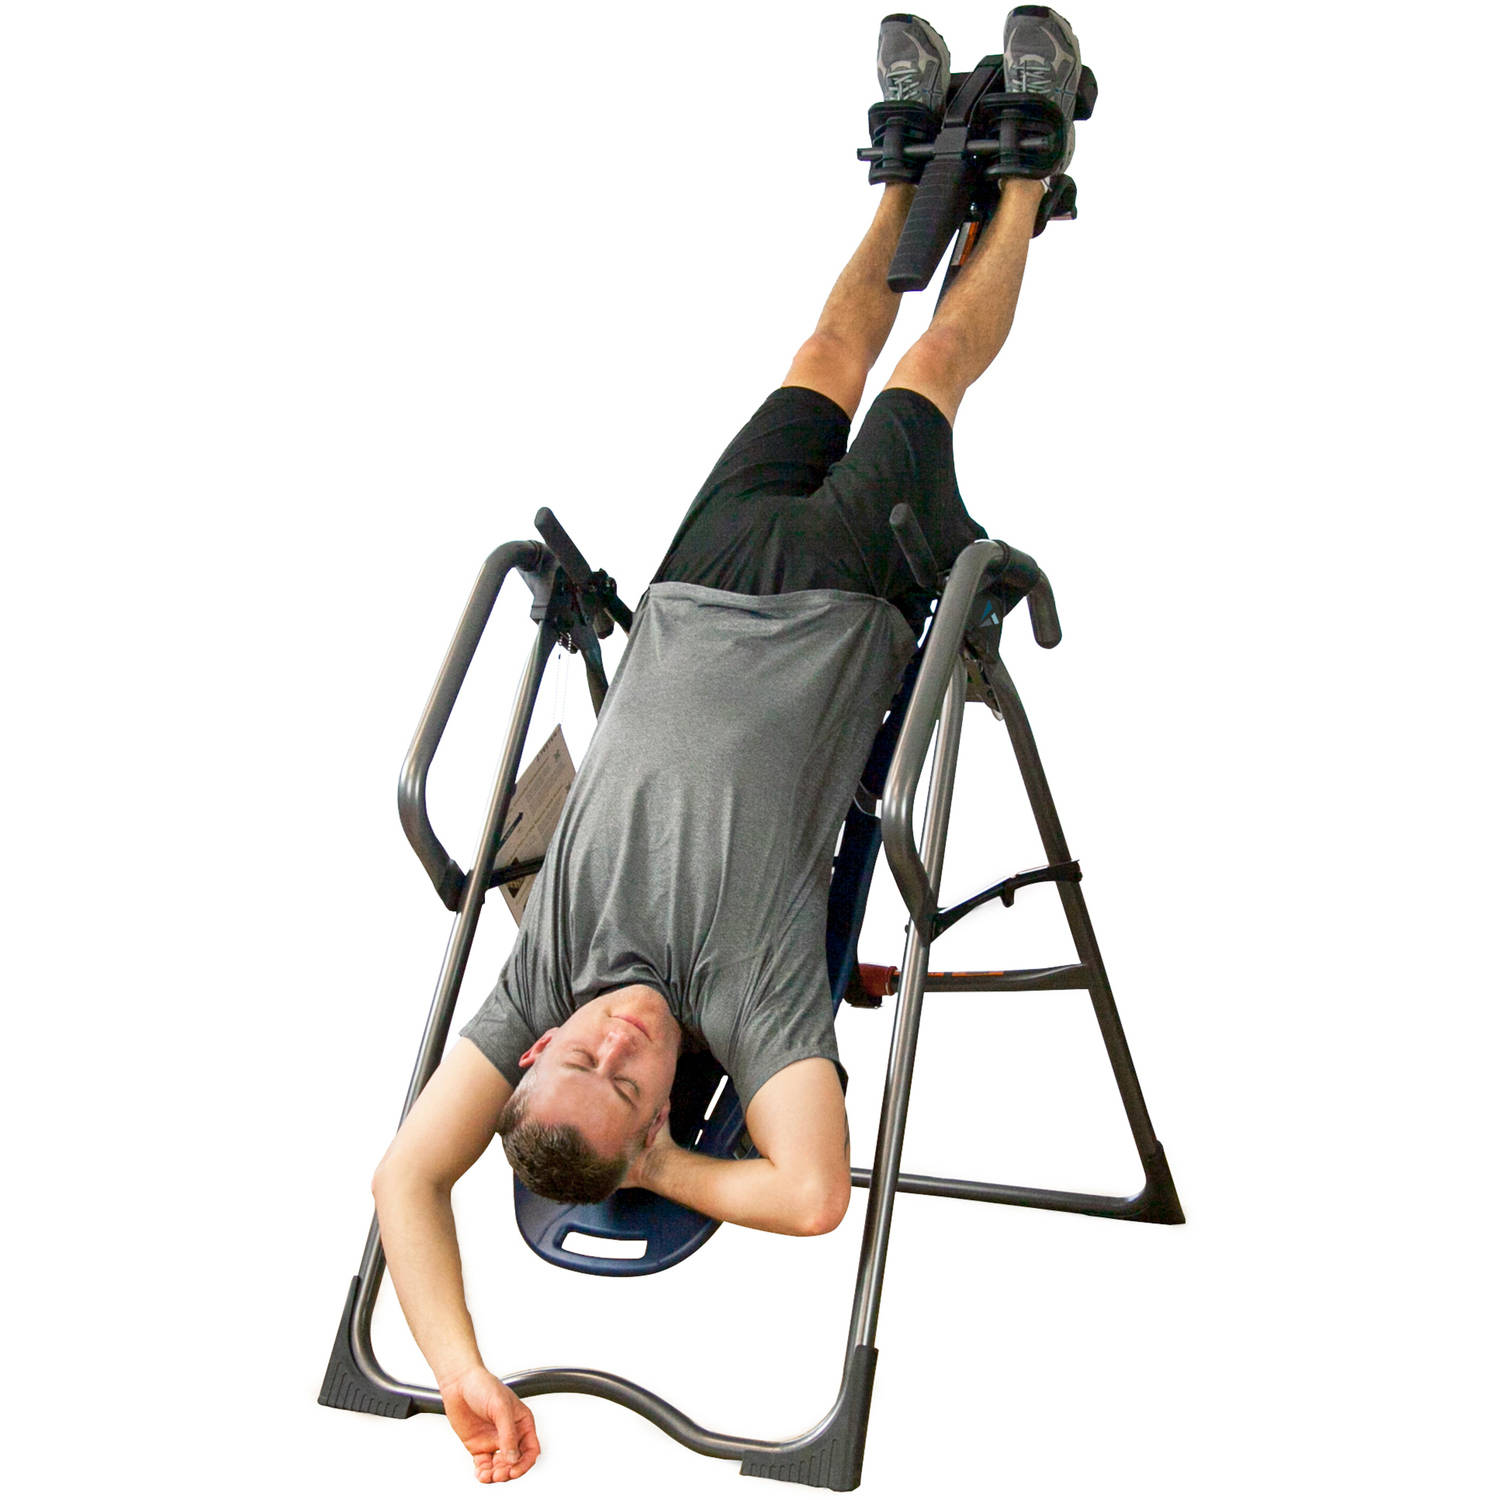 Teeter EP 960 Inversion Table with Back Pain Relief DVD Walmart